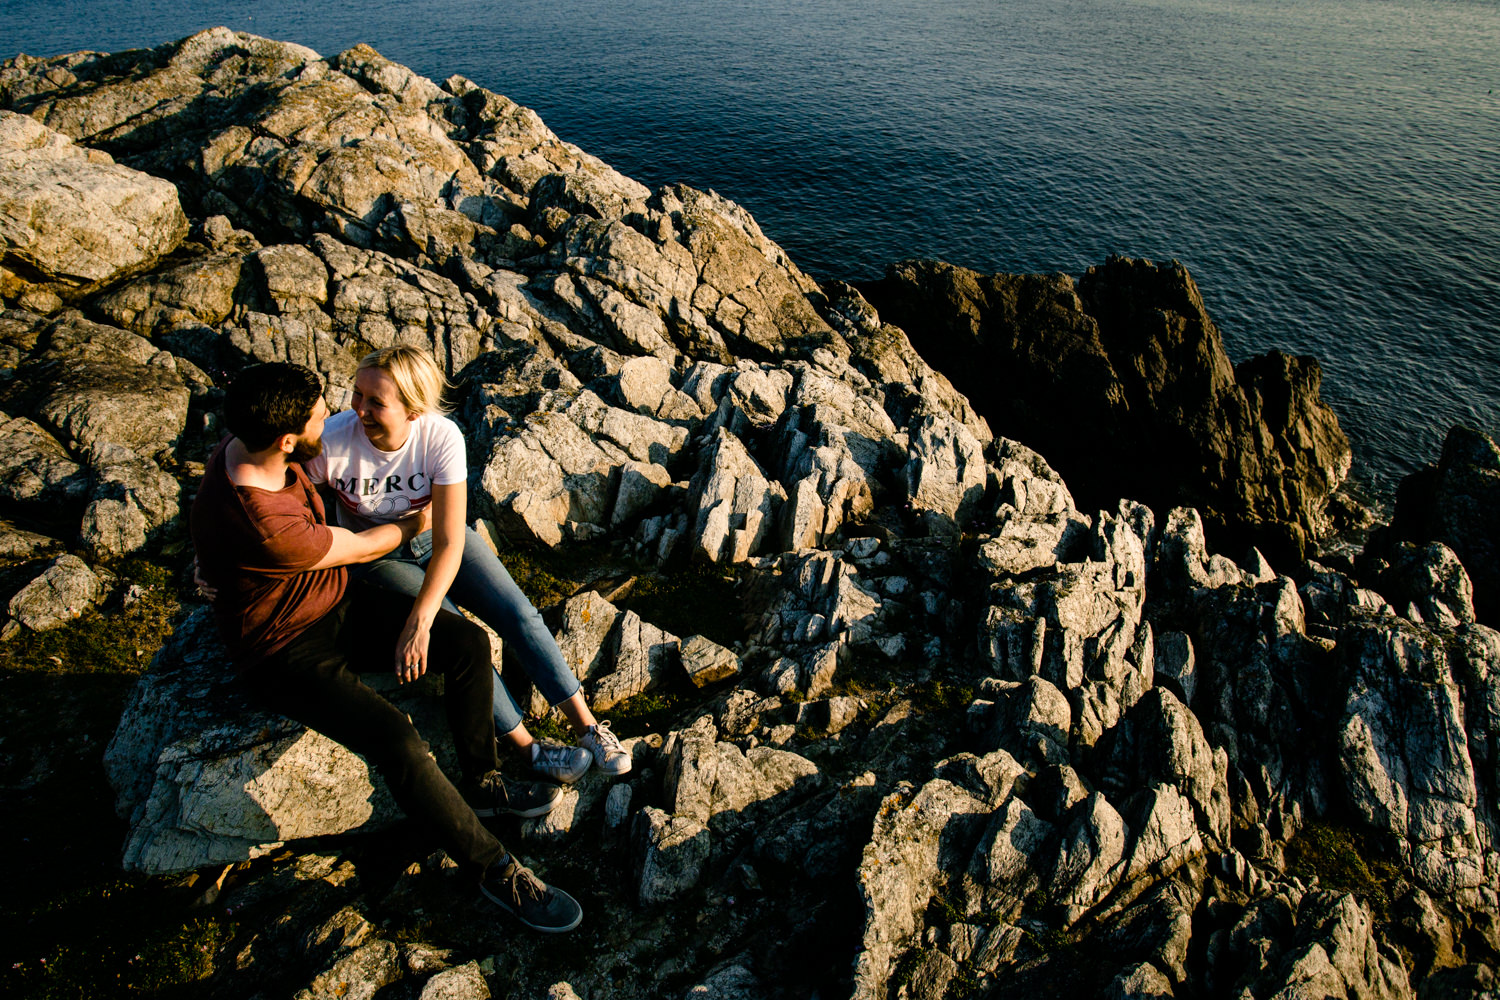 A view down the cliff rocks in Anglesey, of a couple sat cuddling.